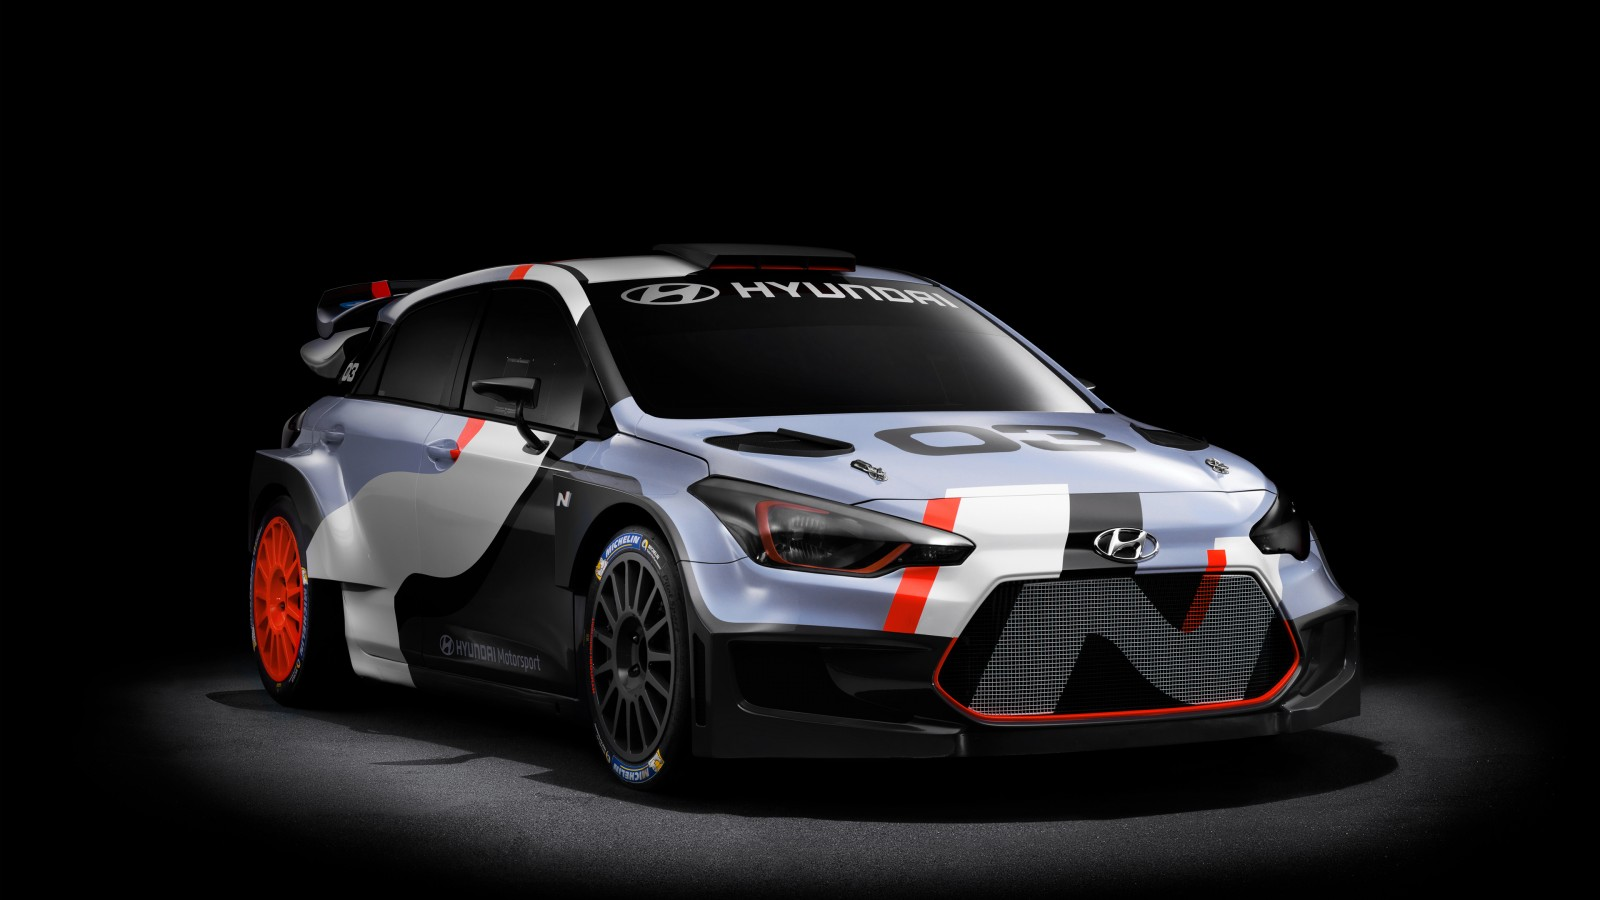 Mercedes Car Wallpaper For Mobile 2015 Hyundai I20 Wrc Concept Wallpaper Hd Car Wallpapers